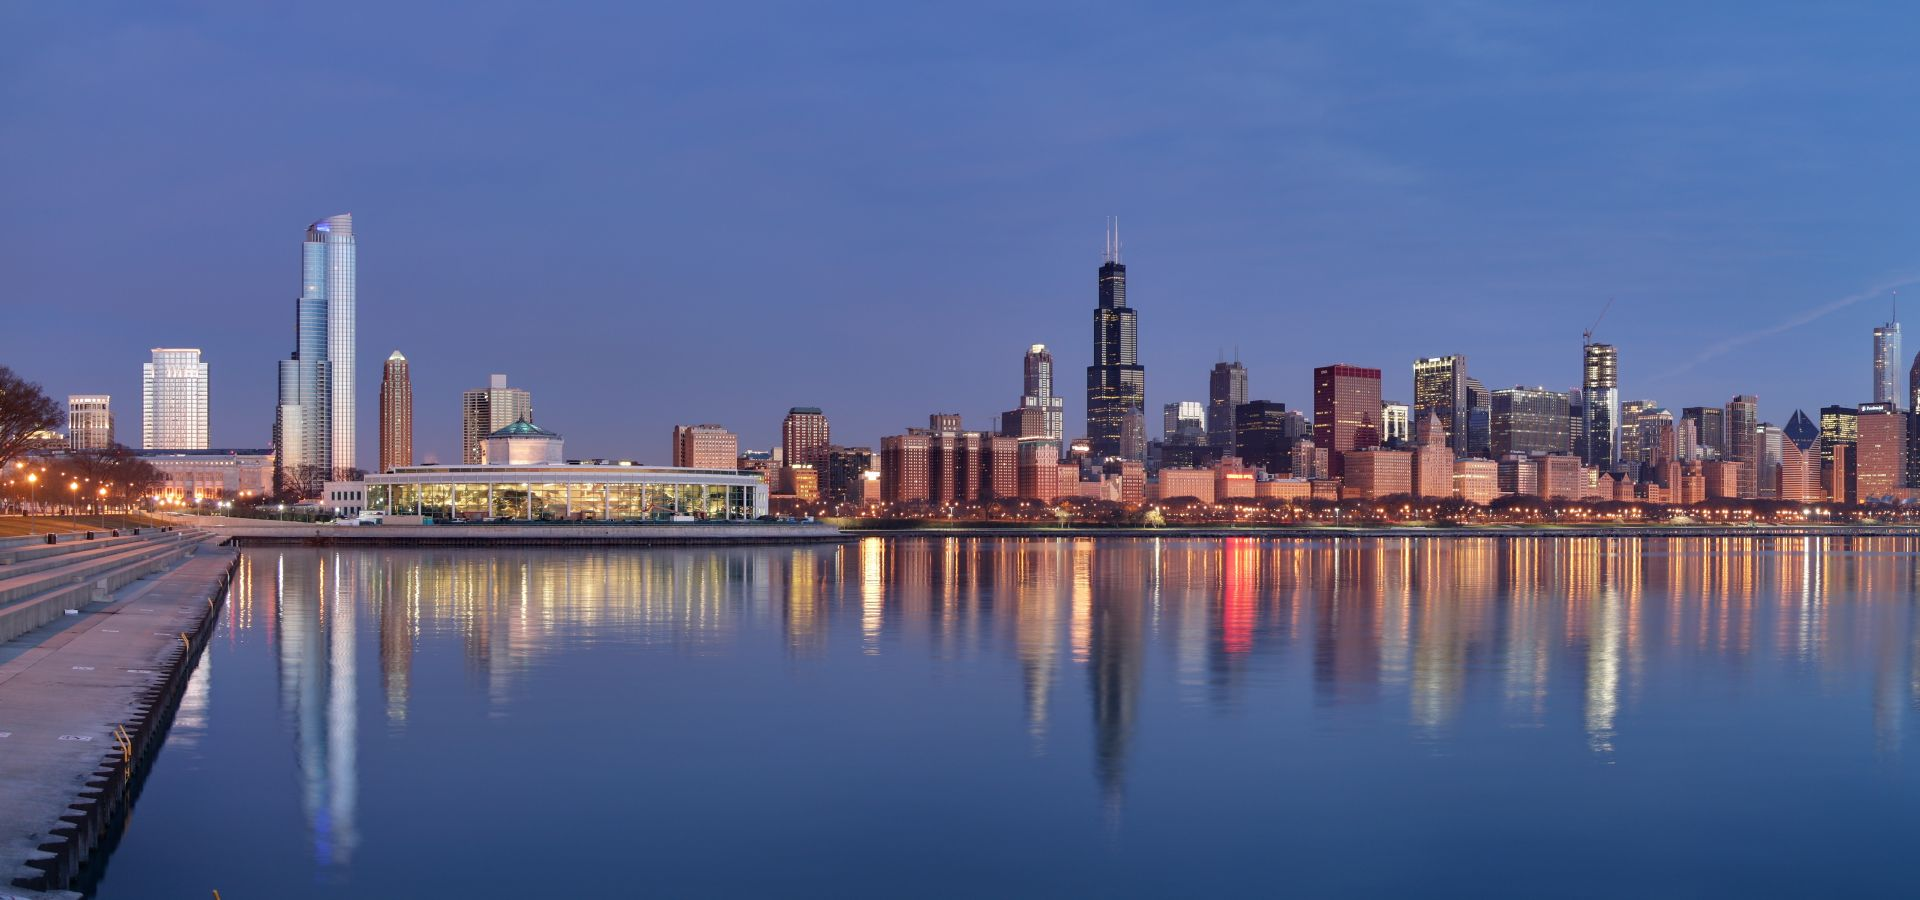 view of Chicago skyline at sunrise over the waterfront